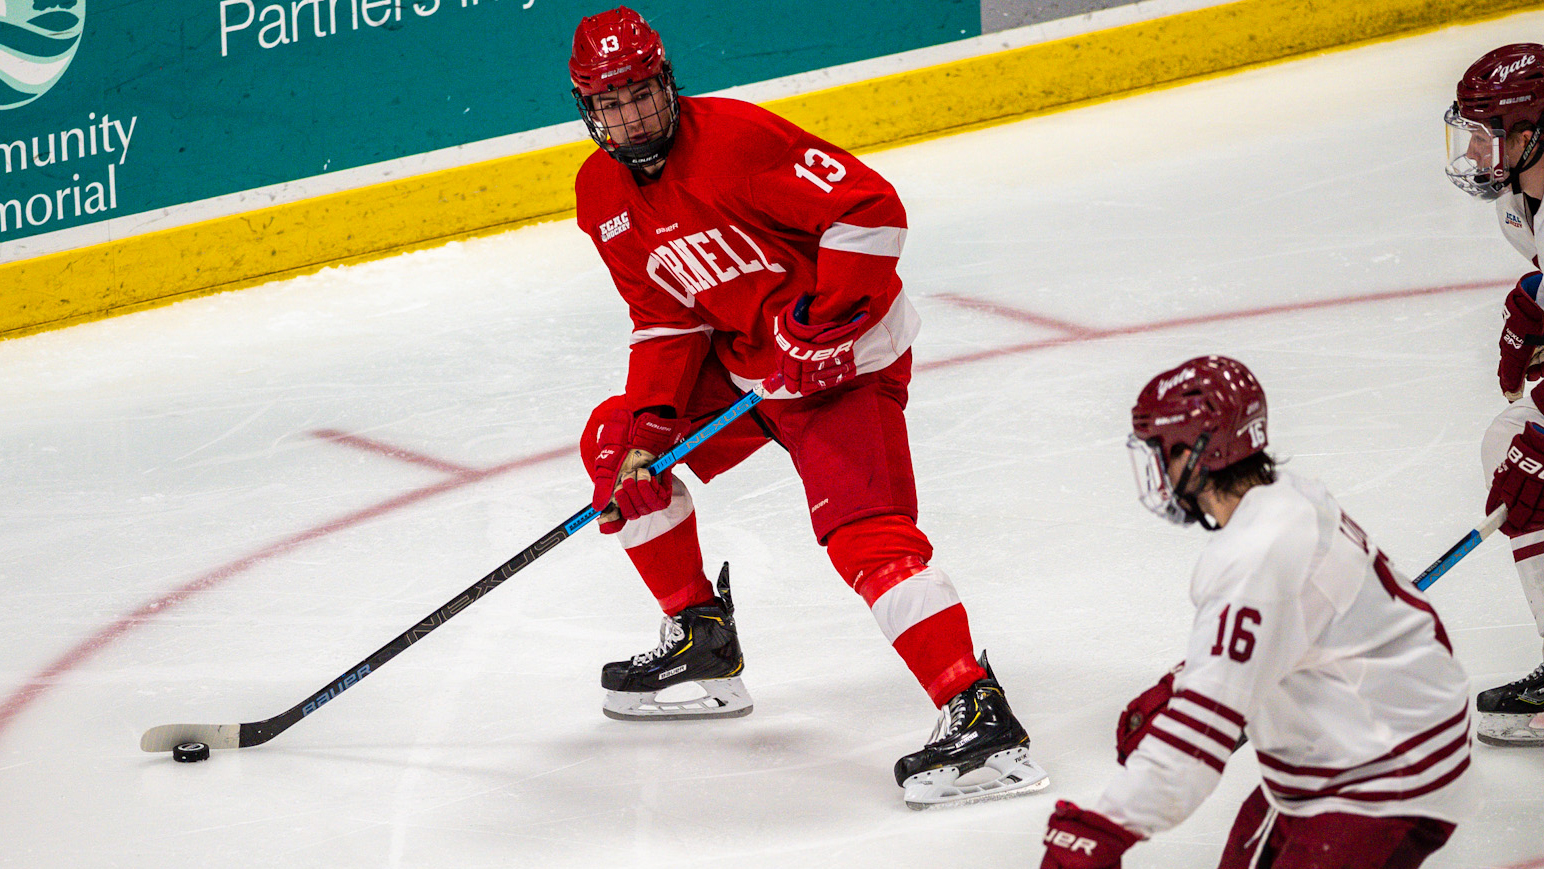 Jack Malone looks to move the puck during the Cornell men's hockey team's 4-1 victory over Colgate on Feb. 8, 2020 at Class of 1965 Arena in Hamilton, N.Y. (Justin Wolford/Colgate Athletics)